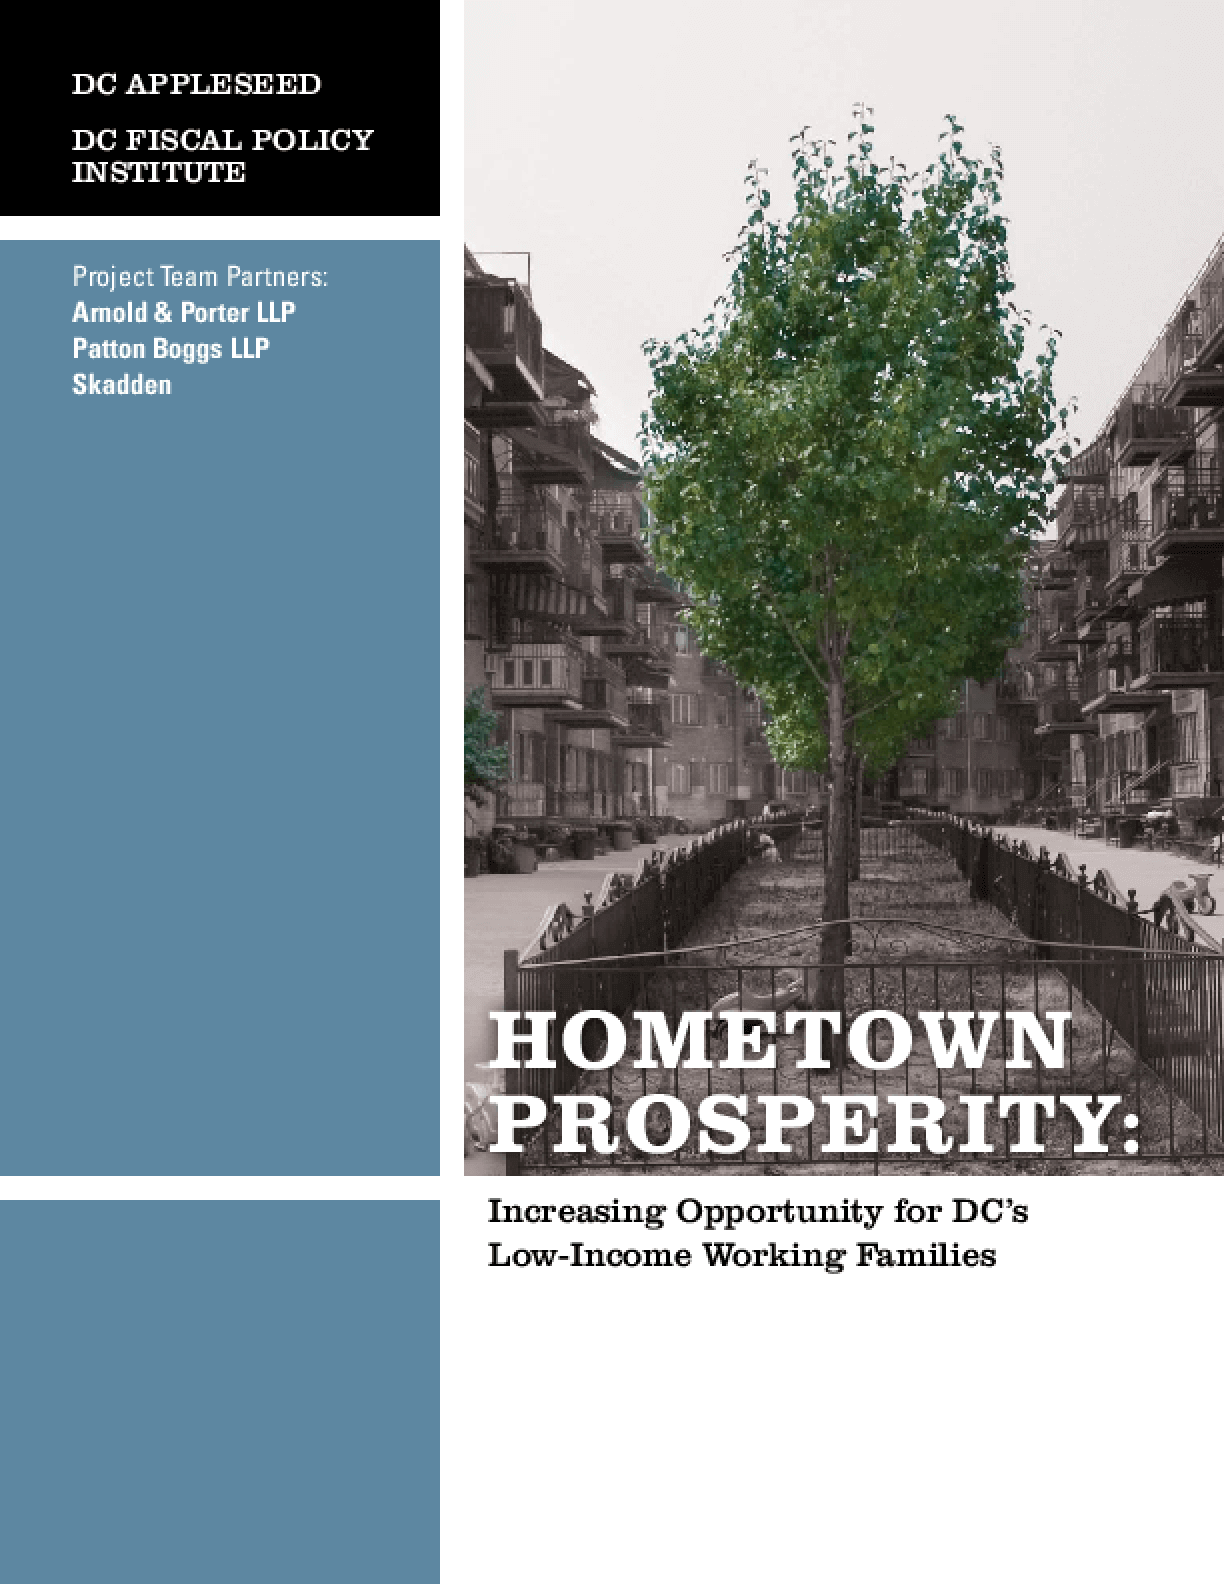 Hometown Prosperity: Increasing Opportunity for DC's Low-Income Working Families